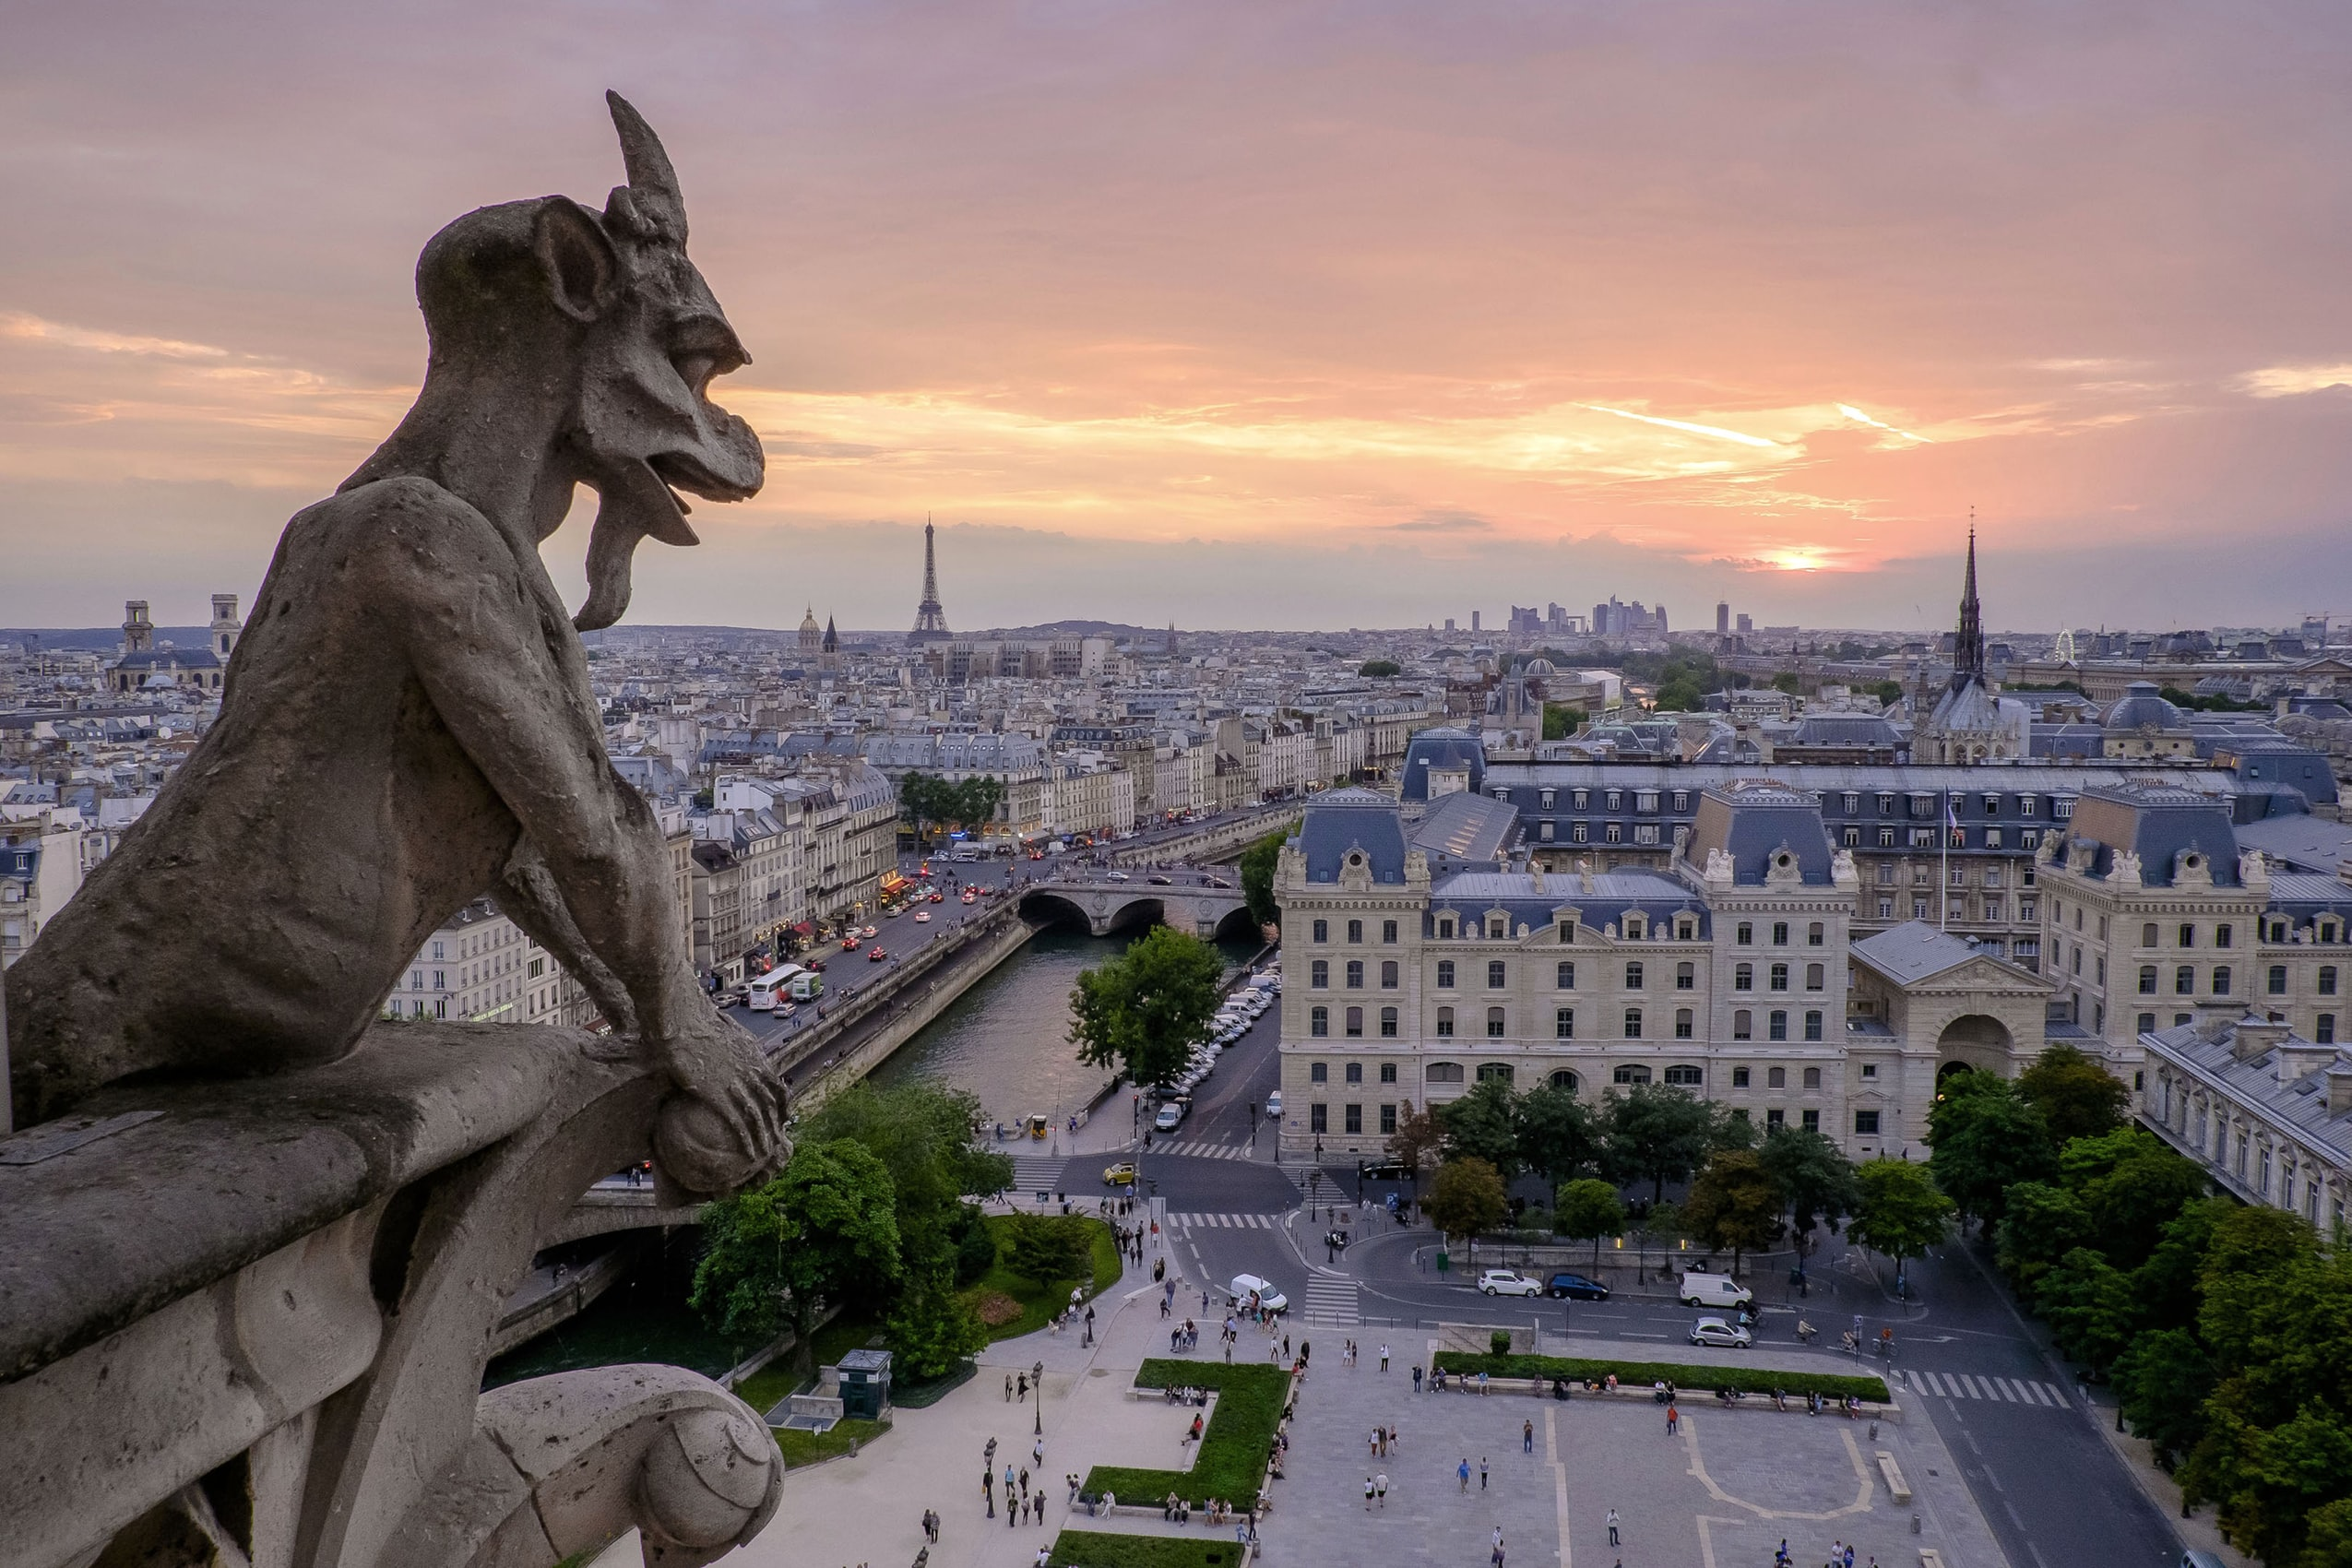 Photo from the roof of Notre-Dame Cathedral showing a gargoyle